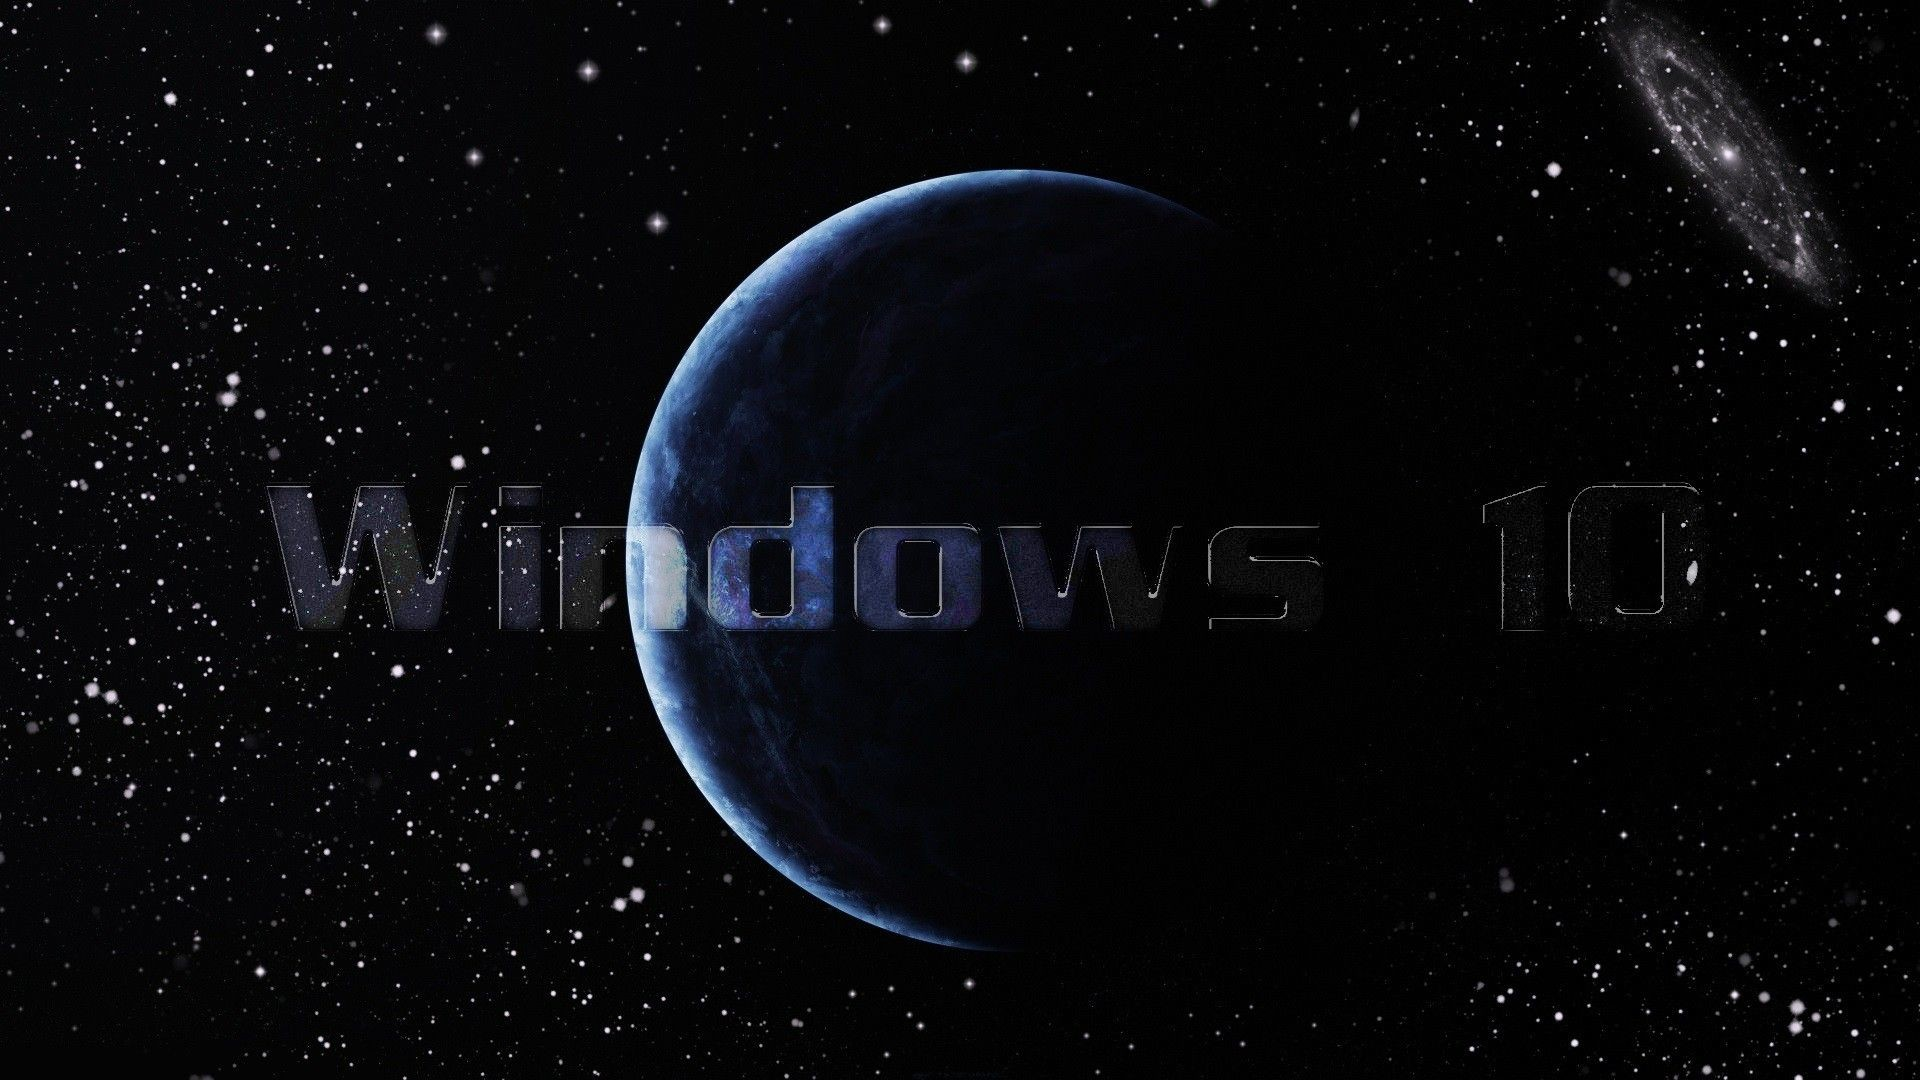 1920x1080 Windows 10 Galaxy wallpaper  (1080p) - Wallpaper .